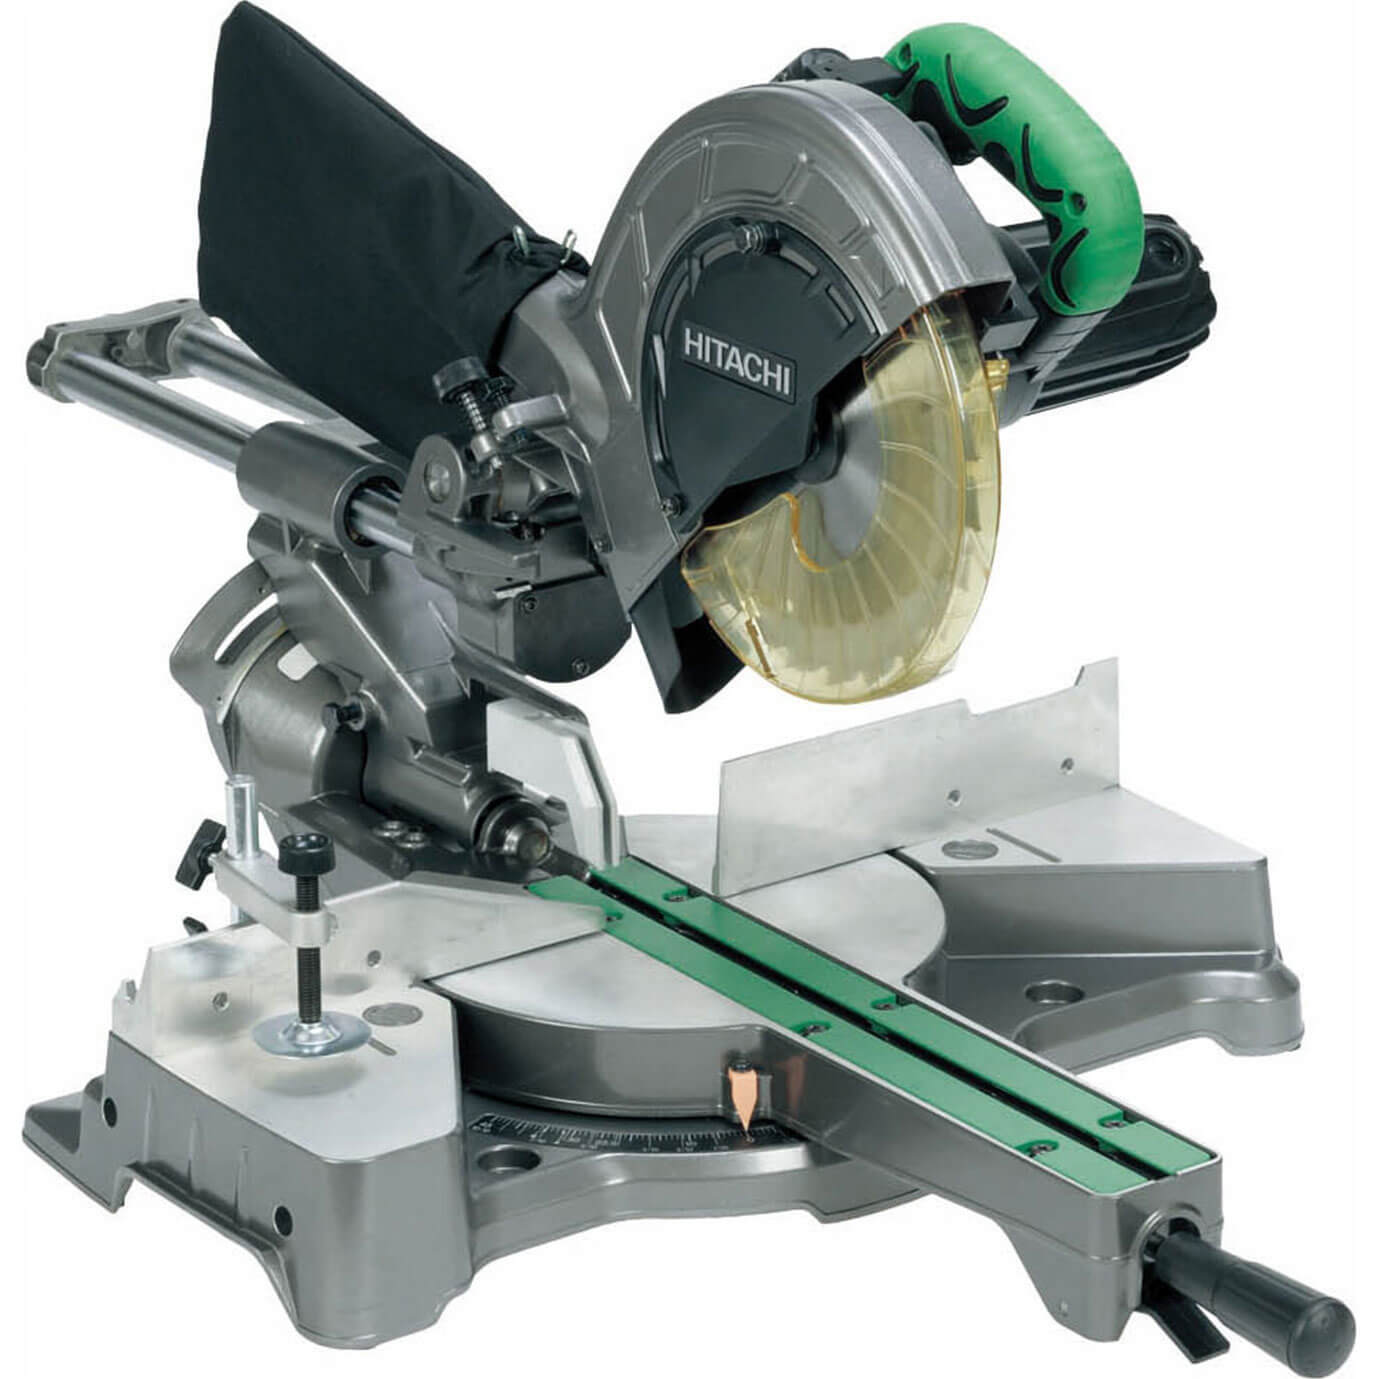 Hitachi C8FSE Sliding Compound Mitre Saw 216mm Blade 1050w 110v